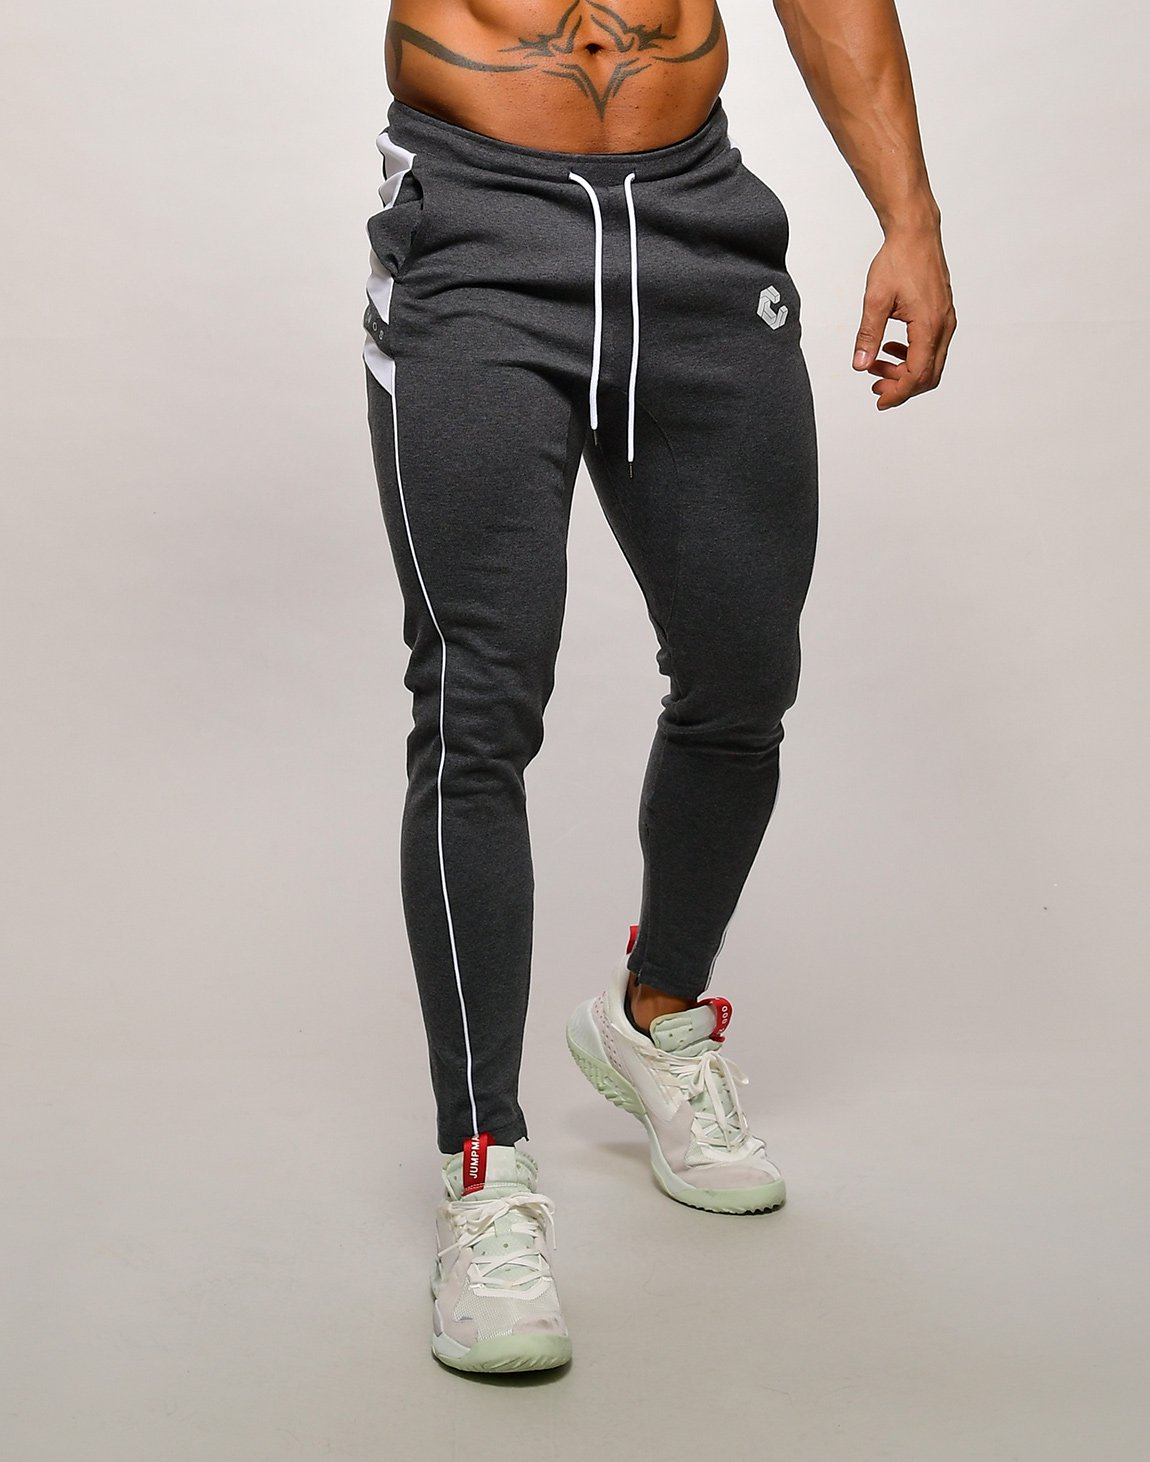 <img class='new_mark_img1' src='https://img.shop-pro.jp/img/new/icons1.gif' style='border:none;display:inline;margin:0px;padding:0px;width:auto;' />CRONOS NARROW SWEAT PANTS【C.GRAY】